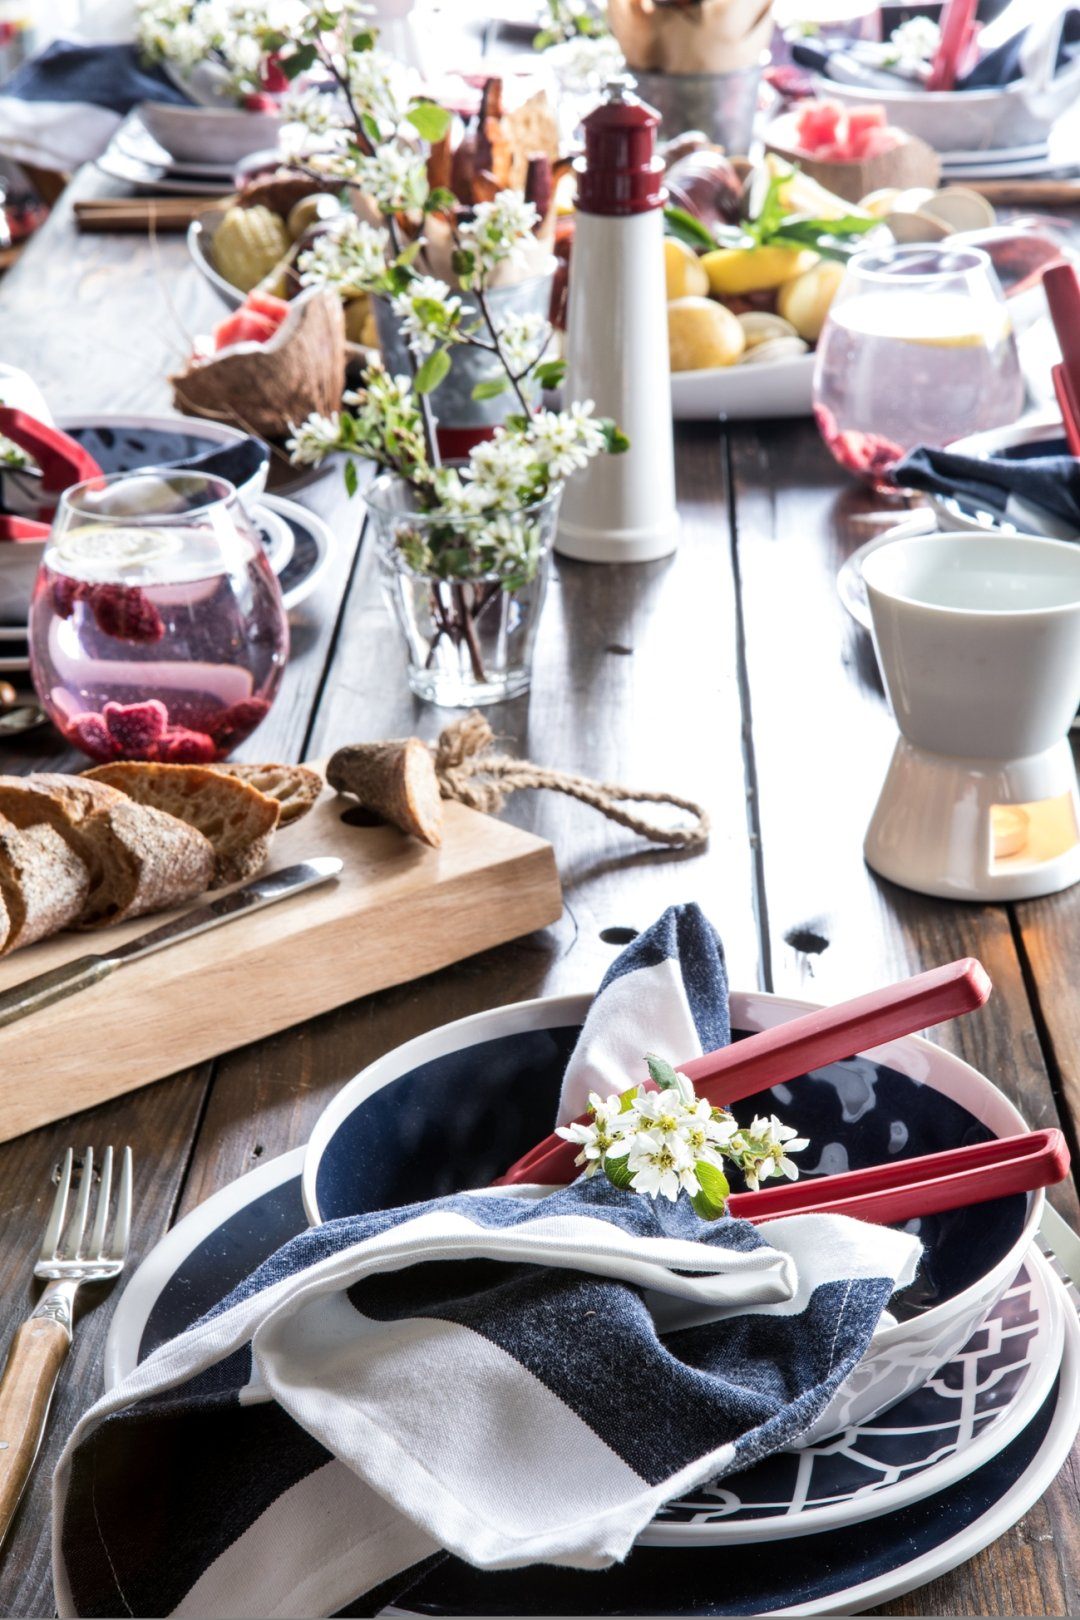 Full glimpse of table with one placesetting at the head of the table